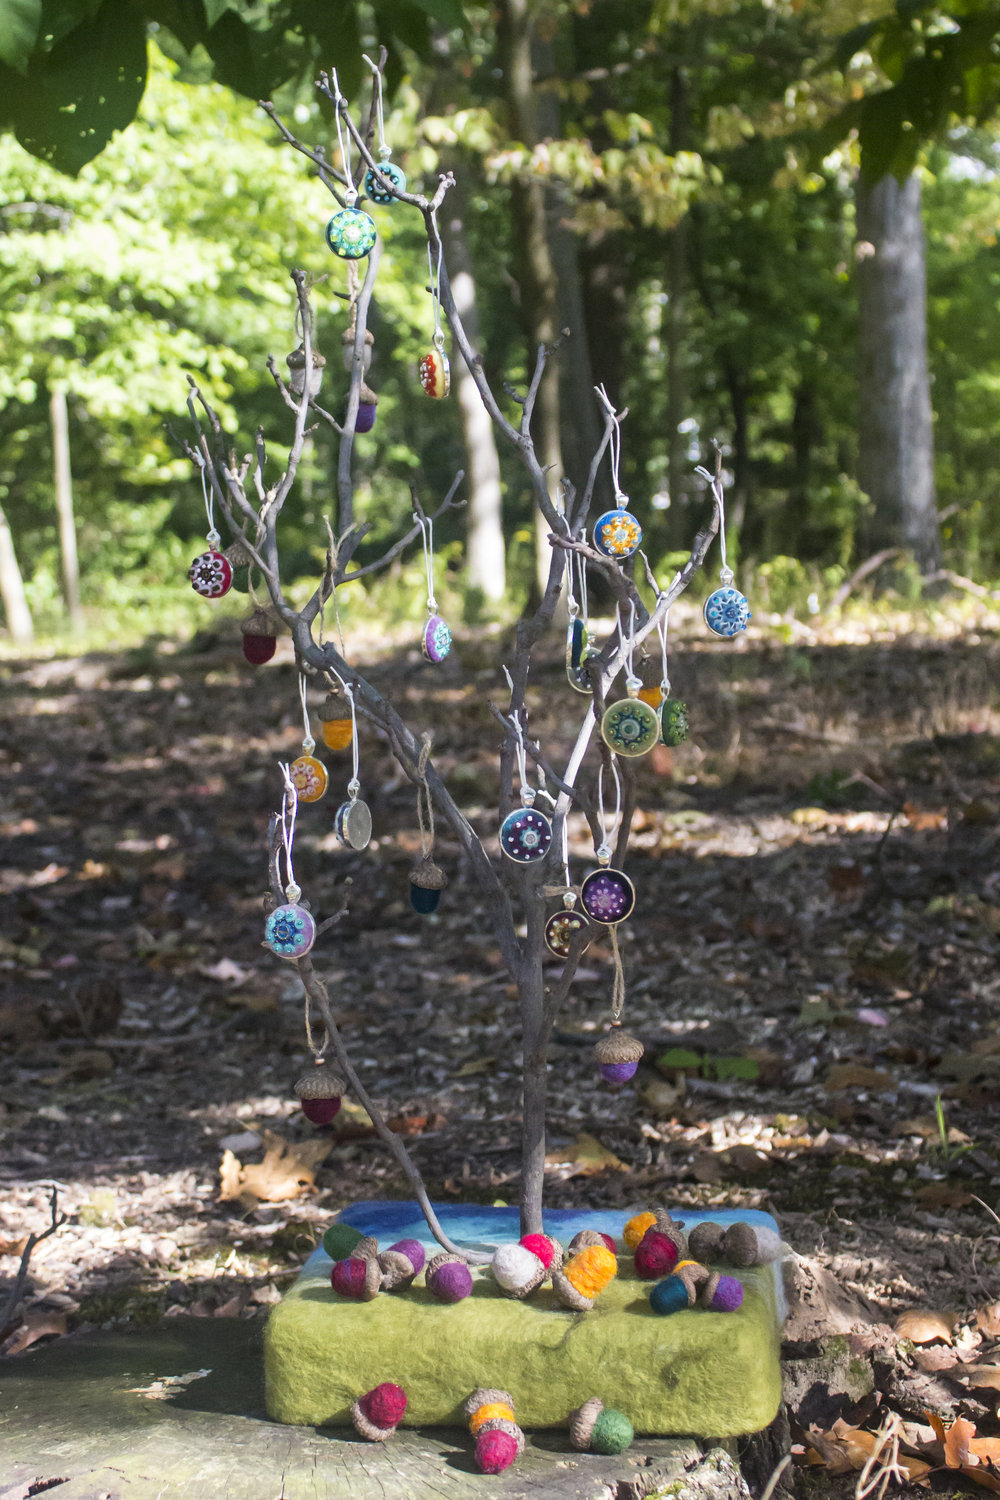 Pendants galore, and the tree display to go with it!